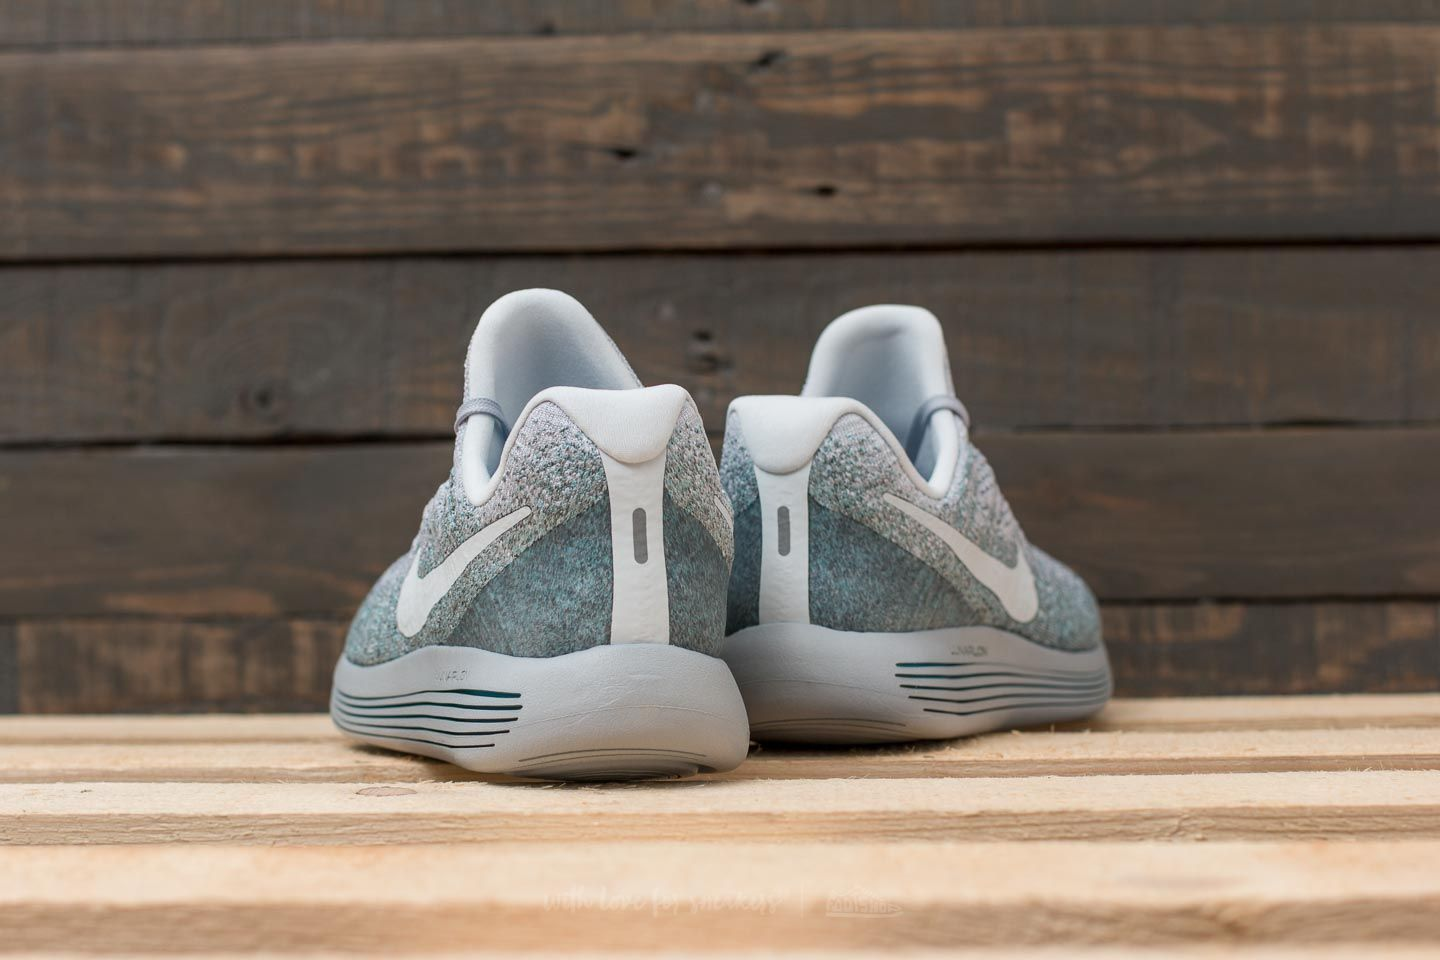 Running Shoes | Nike LunarEpic Low Flyknit 2 Pure Platinum